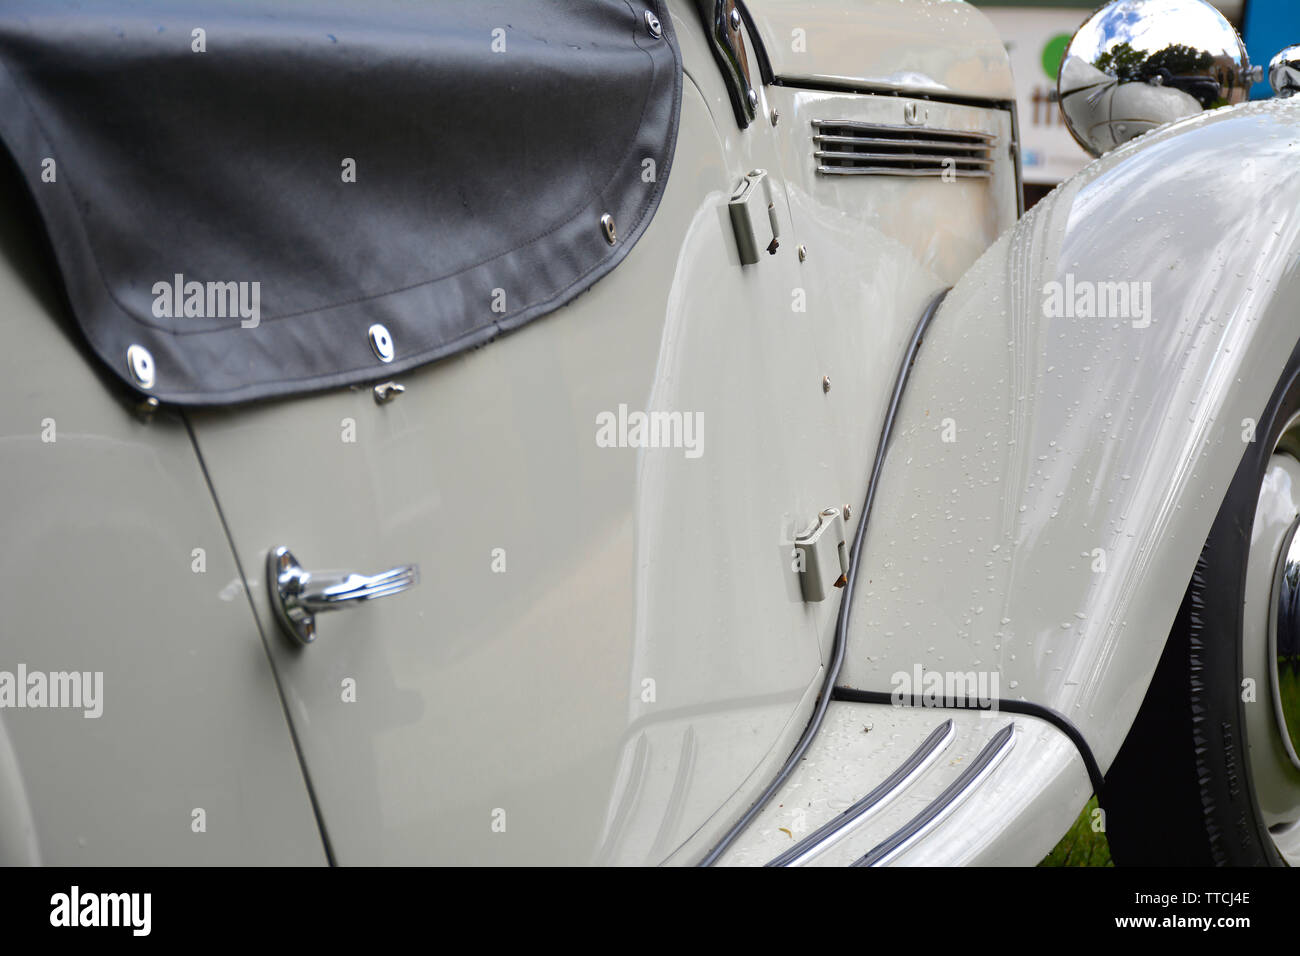 Close up of a Classic Sports Car showing the door, wing and bonnet - Stock Image